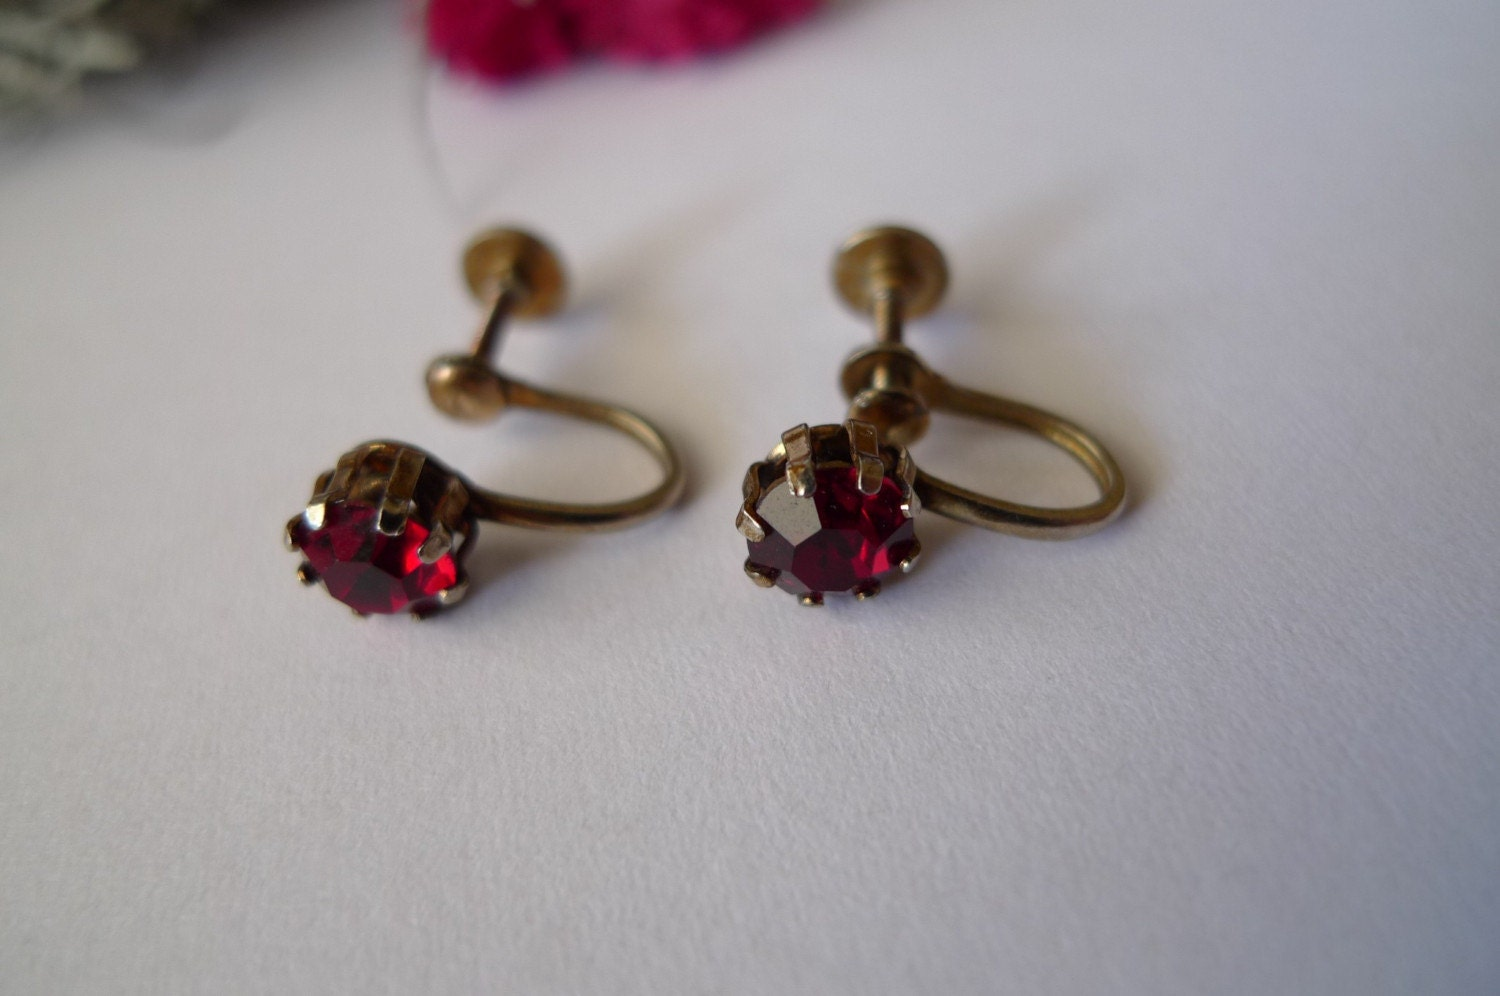 Vintage Screwback Earrings 85